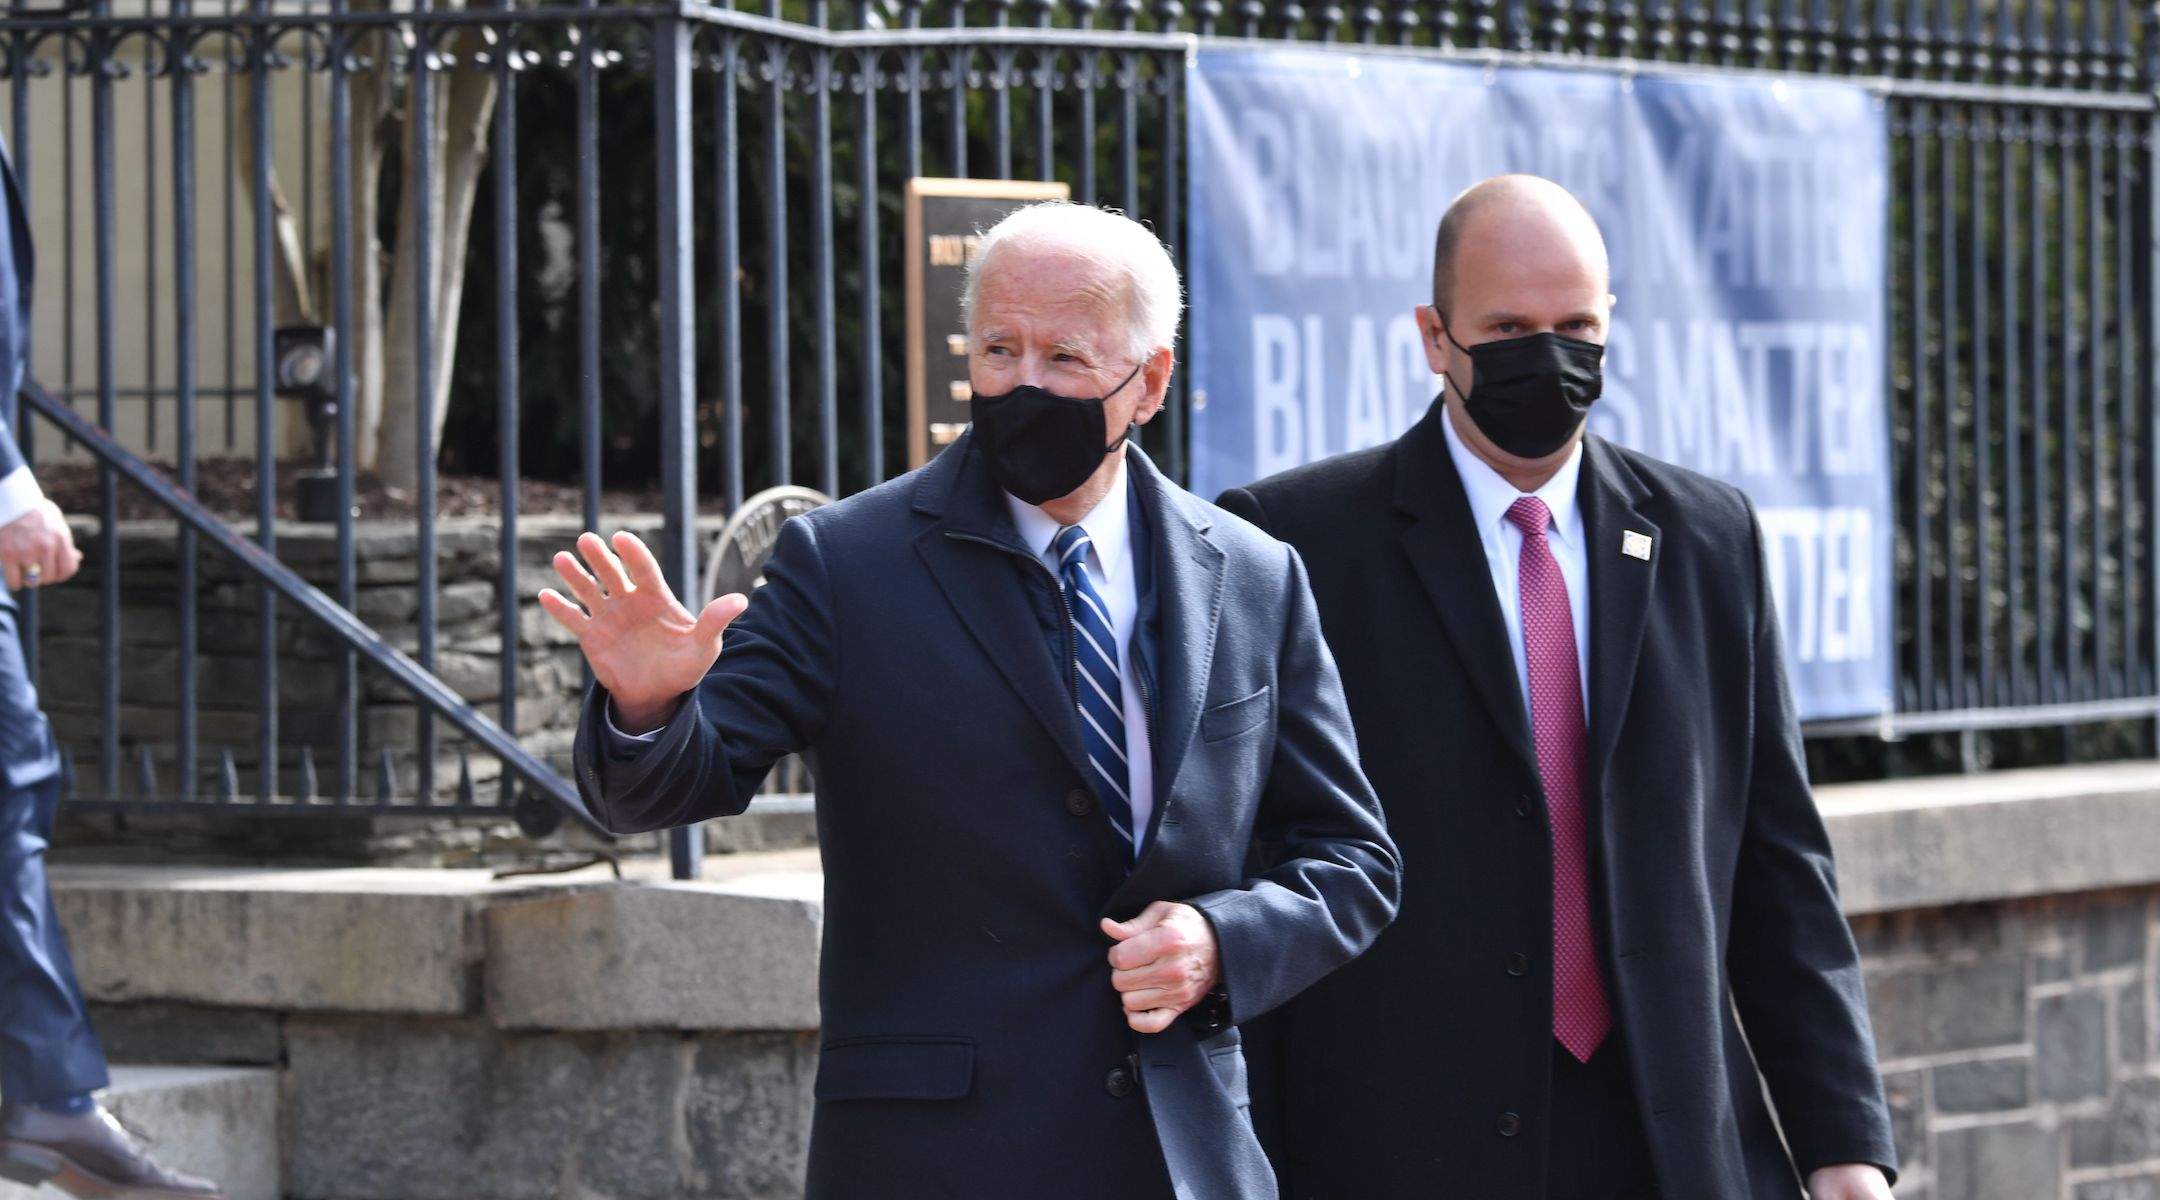 Joe Biden's first Sunday Mass as president involves stop at Jewish deli owned by his...